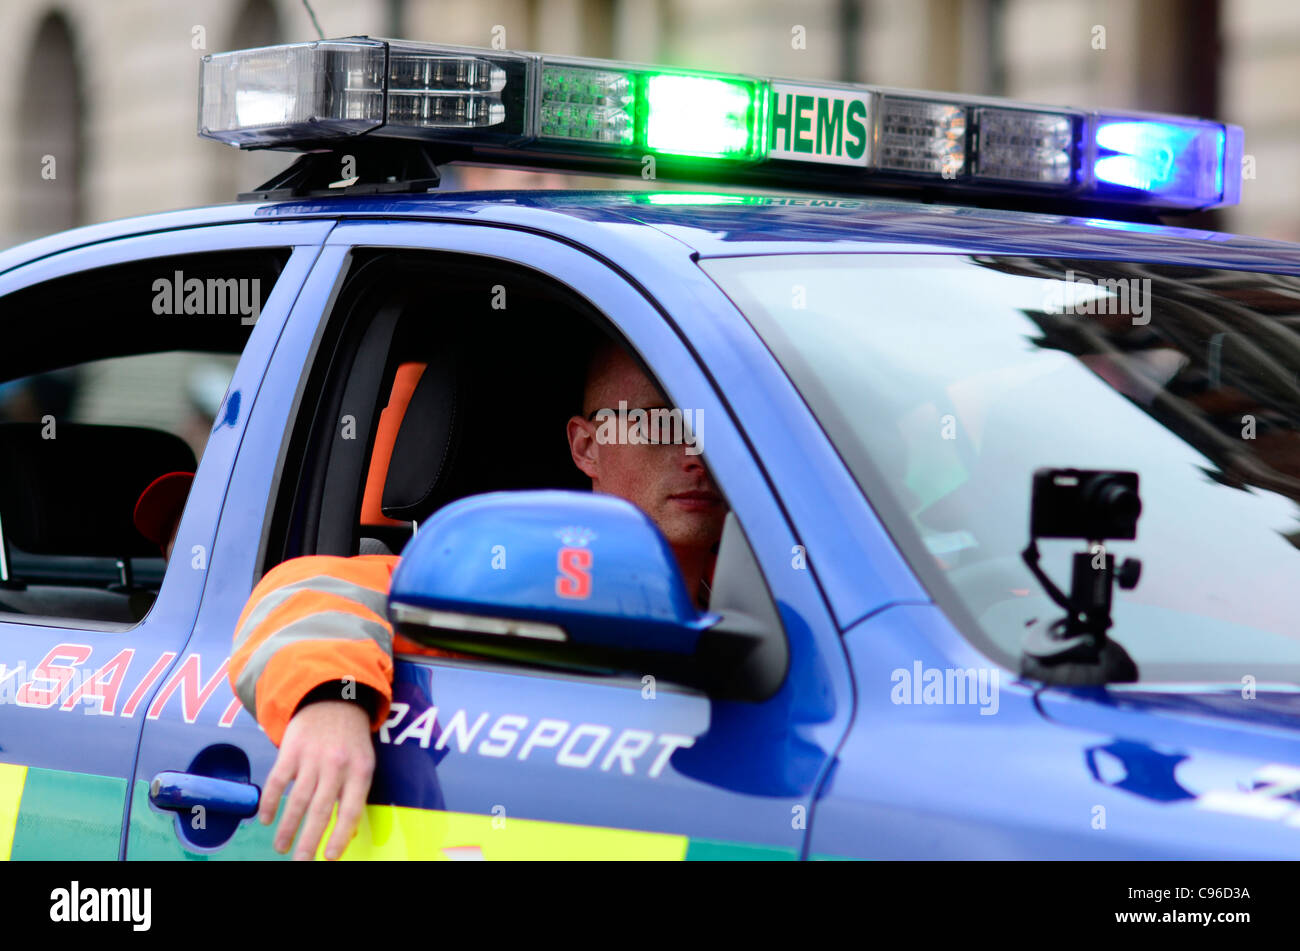 Hems medical emergency response vehicle at Lord Mayors Show 2011 - Stock Image